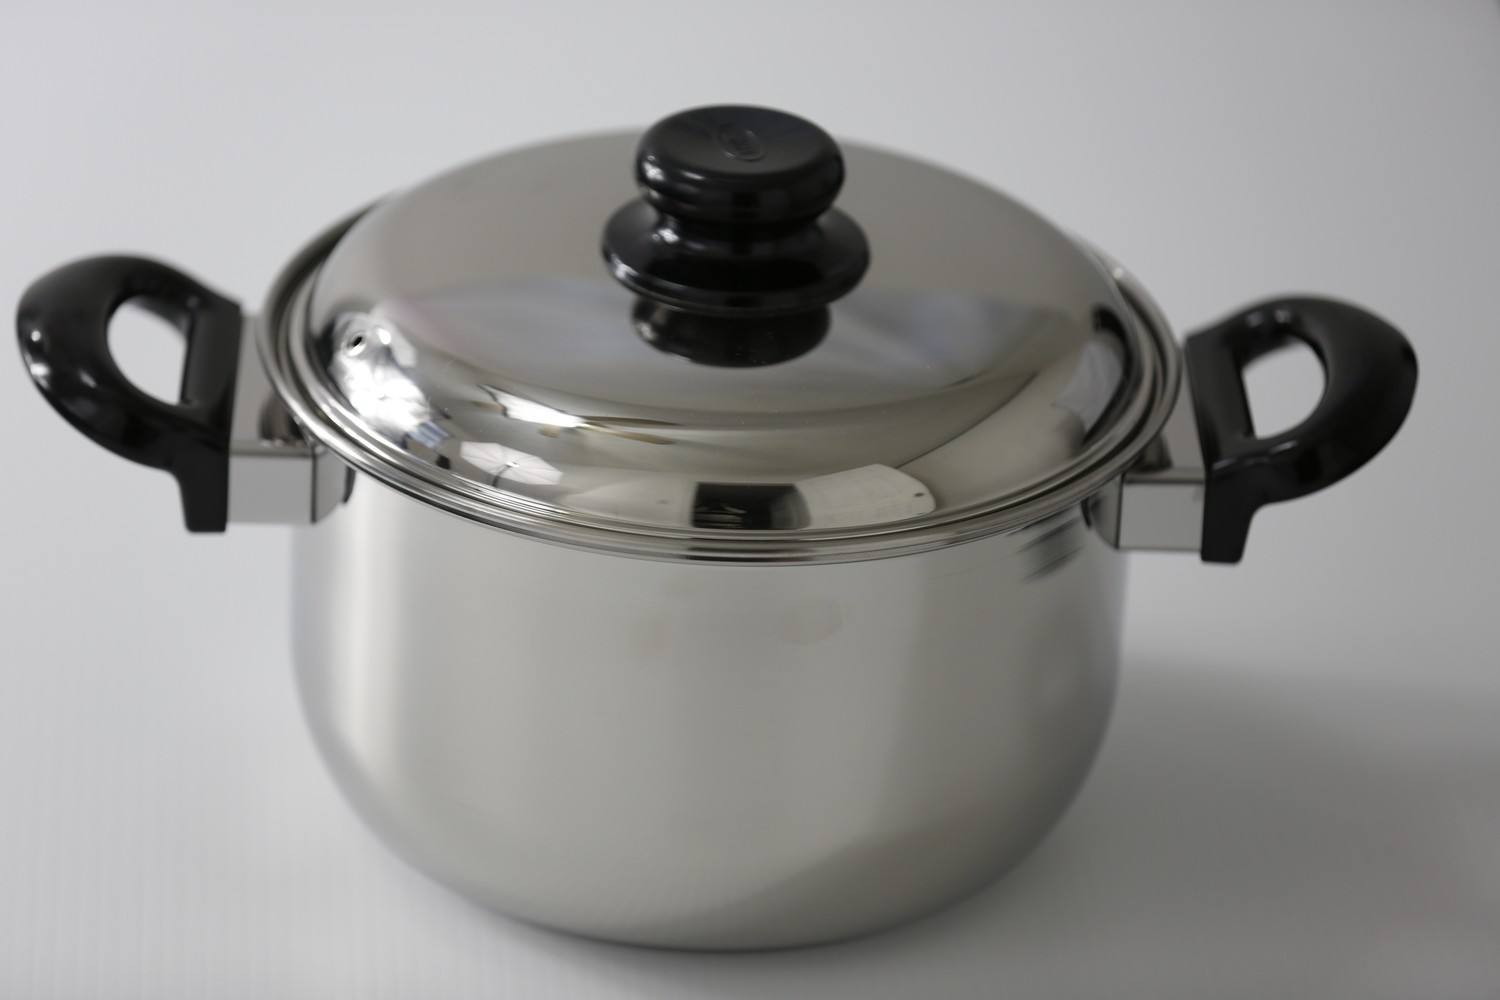 SS1- 7.93 Qt. Stainless Steel Dutch Oven with cover and  stay cool bakelite handle